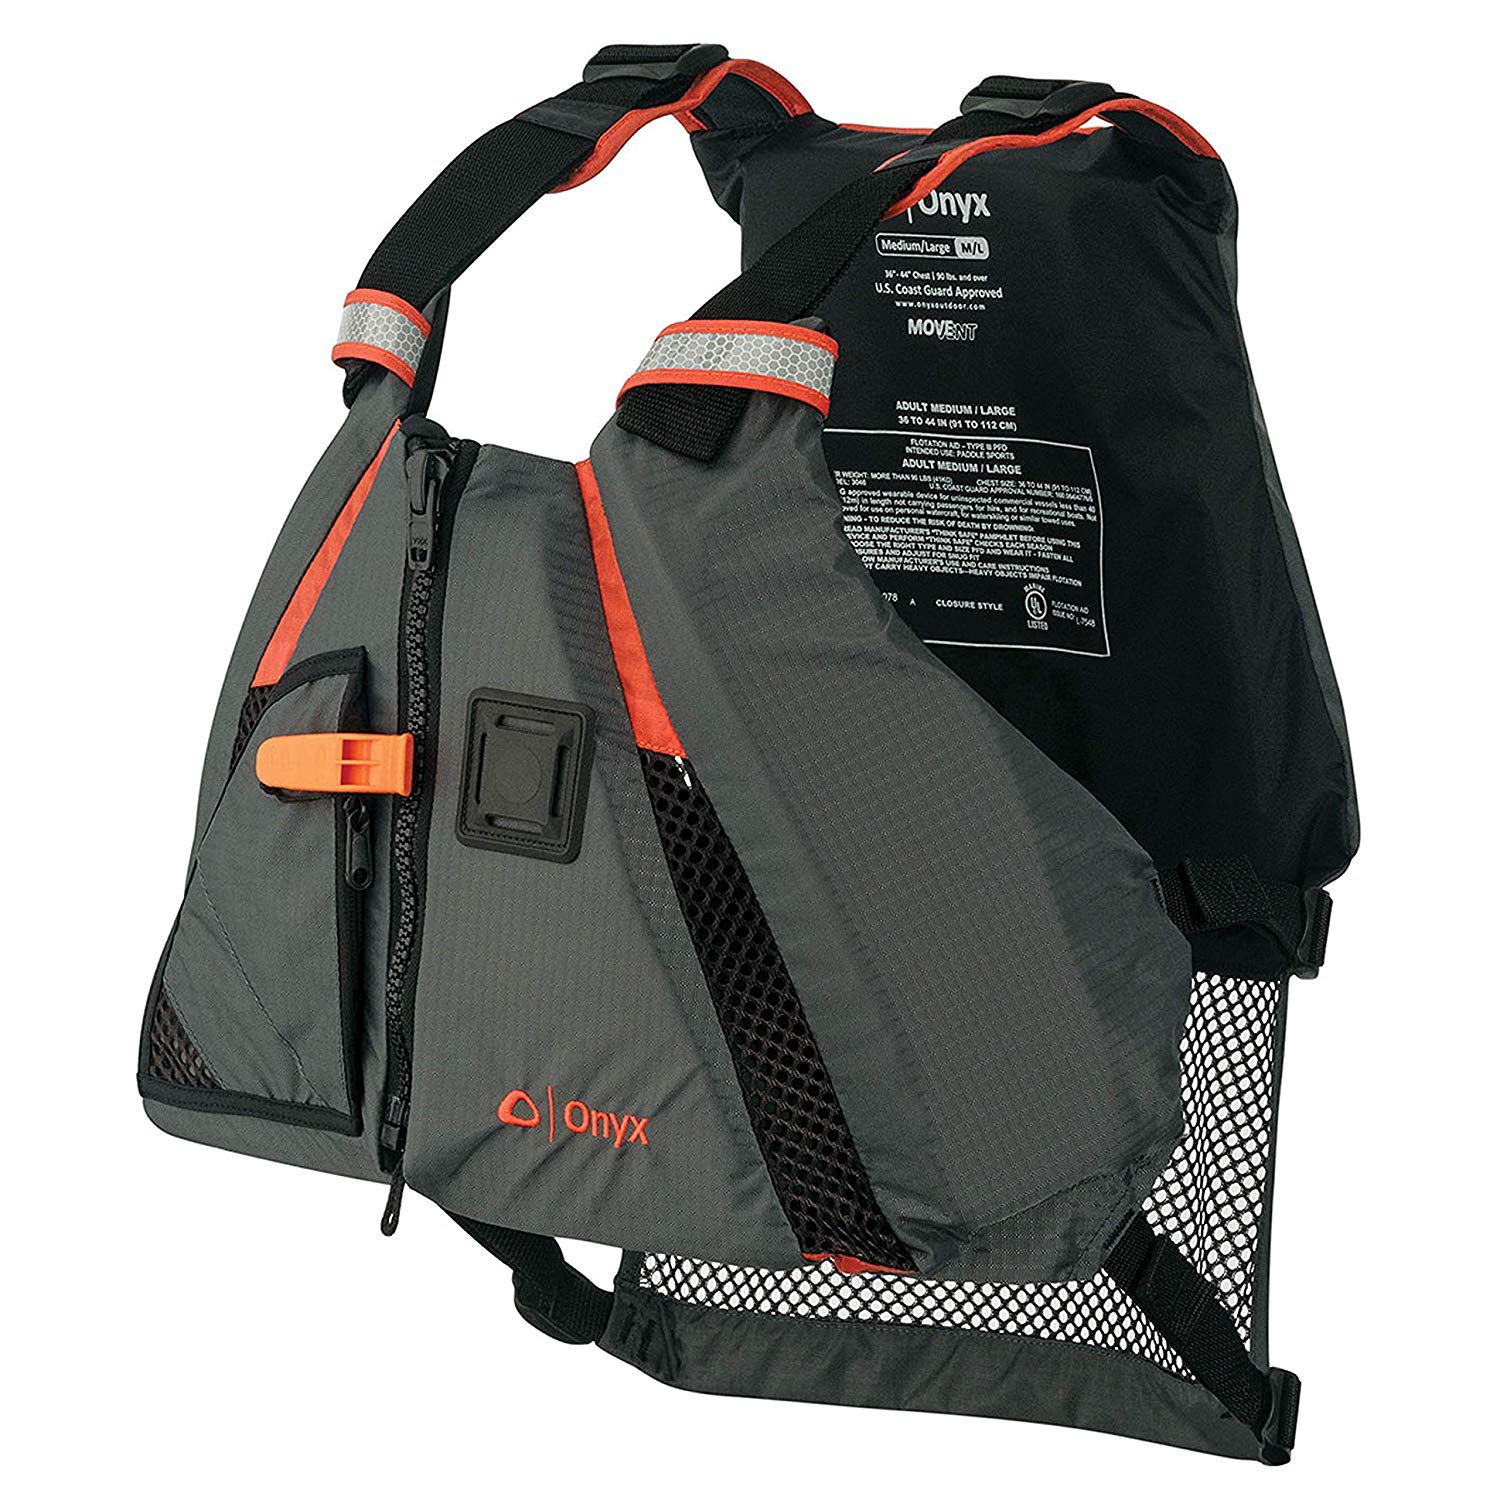 Kayakers might find this style of life jacket comfortable, with plenty of freedom and flexibility to paddle.